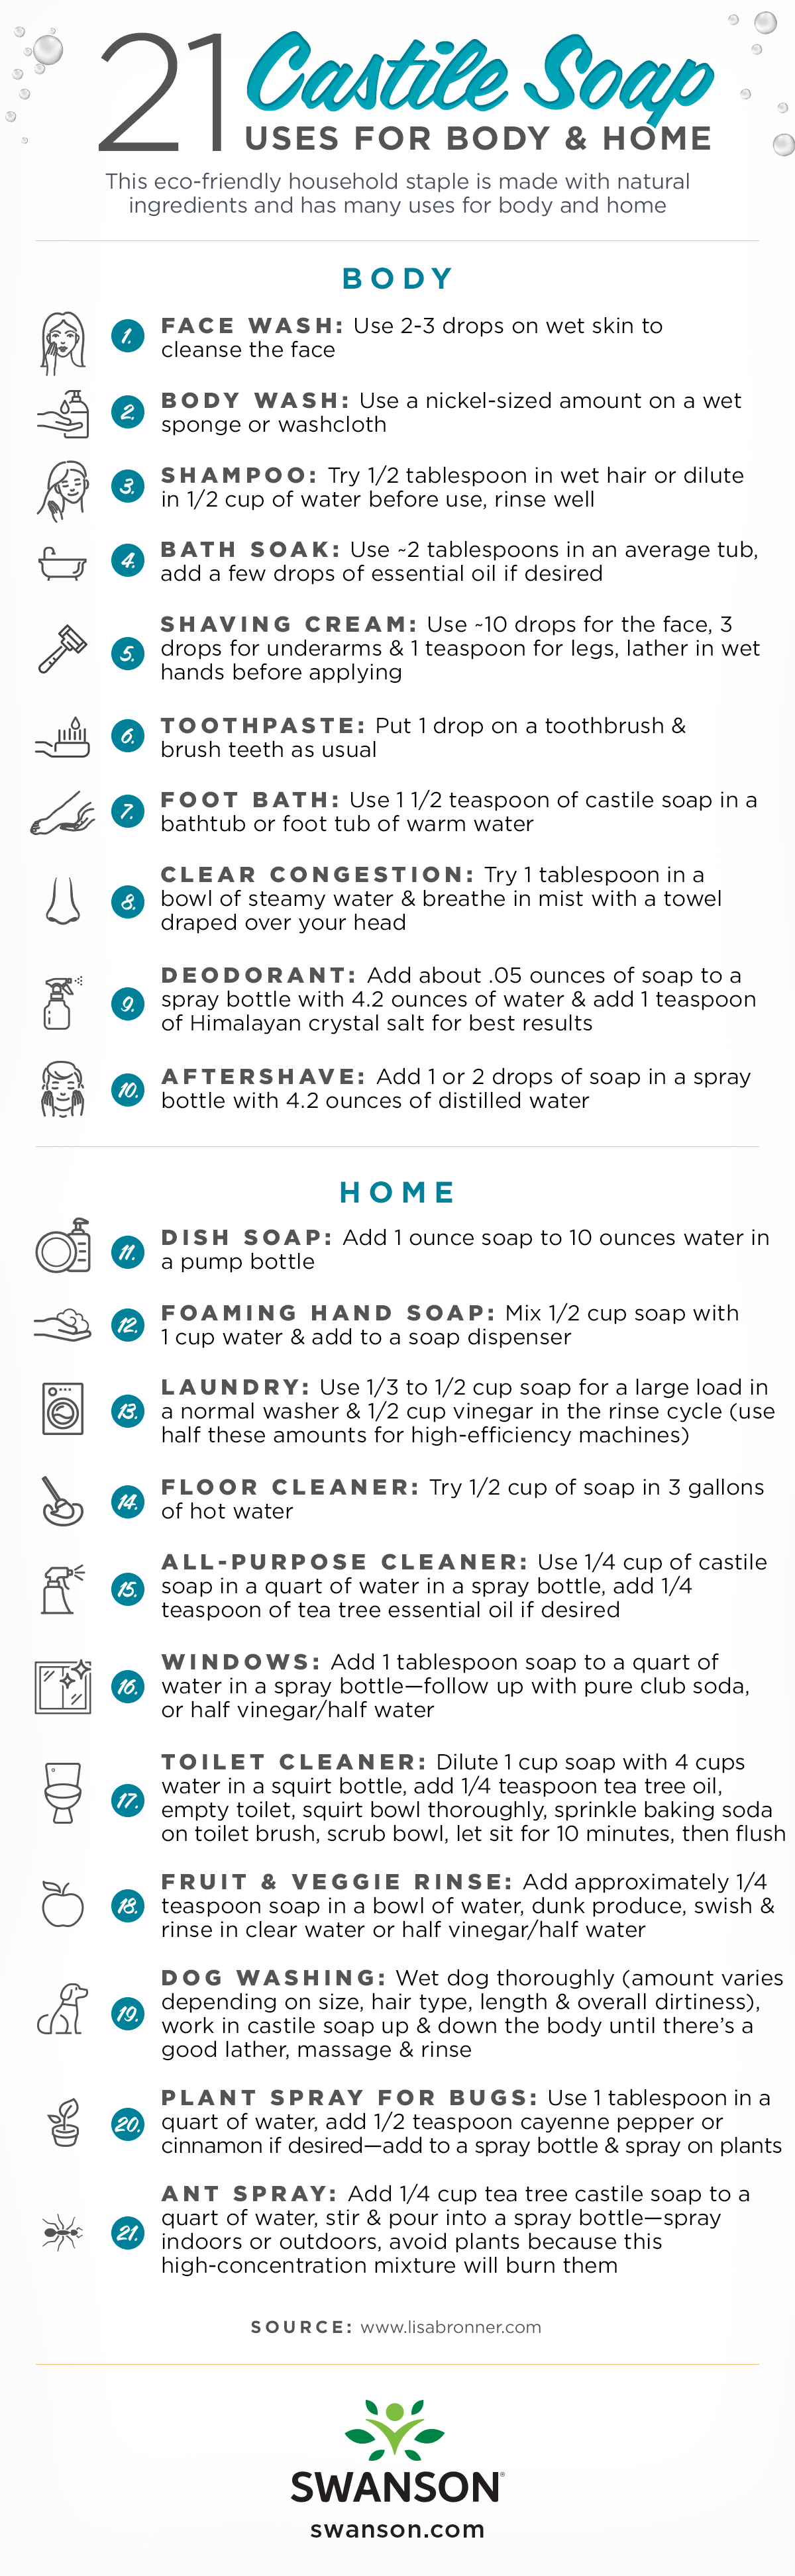 21 Uses for Castile Soap Infographic